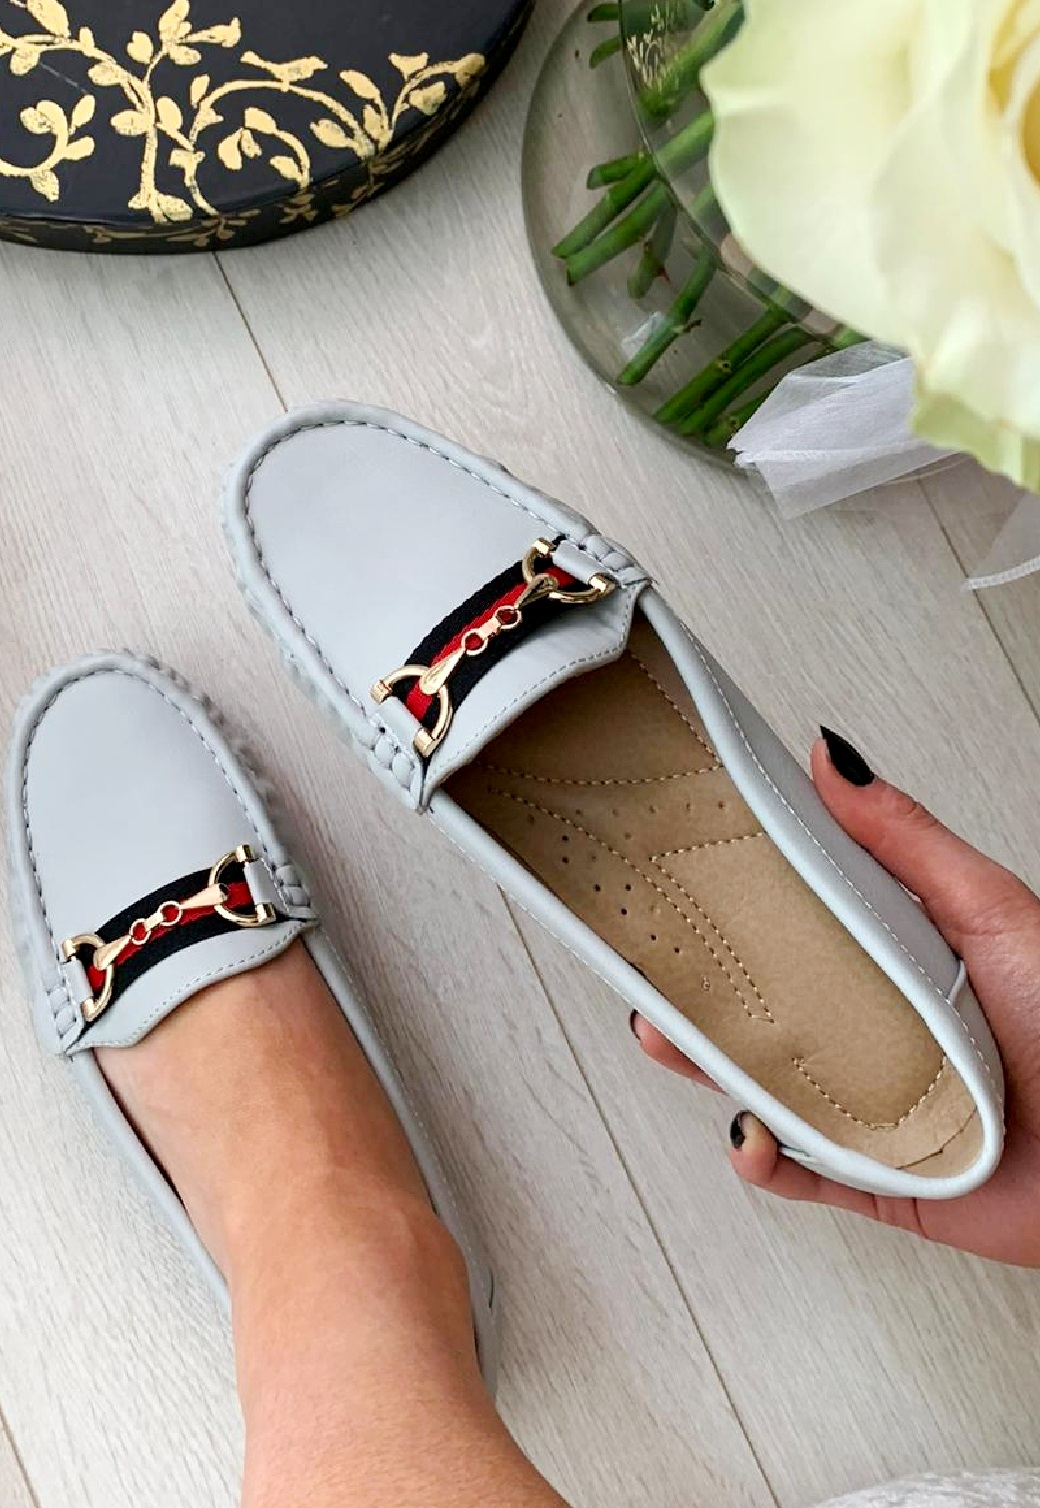 LADIES-WOMENS-FLATS-SLIP-ON-LOAFERS-WORK-OFFICE-BUCKLE-PUMPS-COMFY-SHOES-SZ-3-8 thumbnail 19